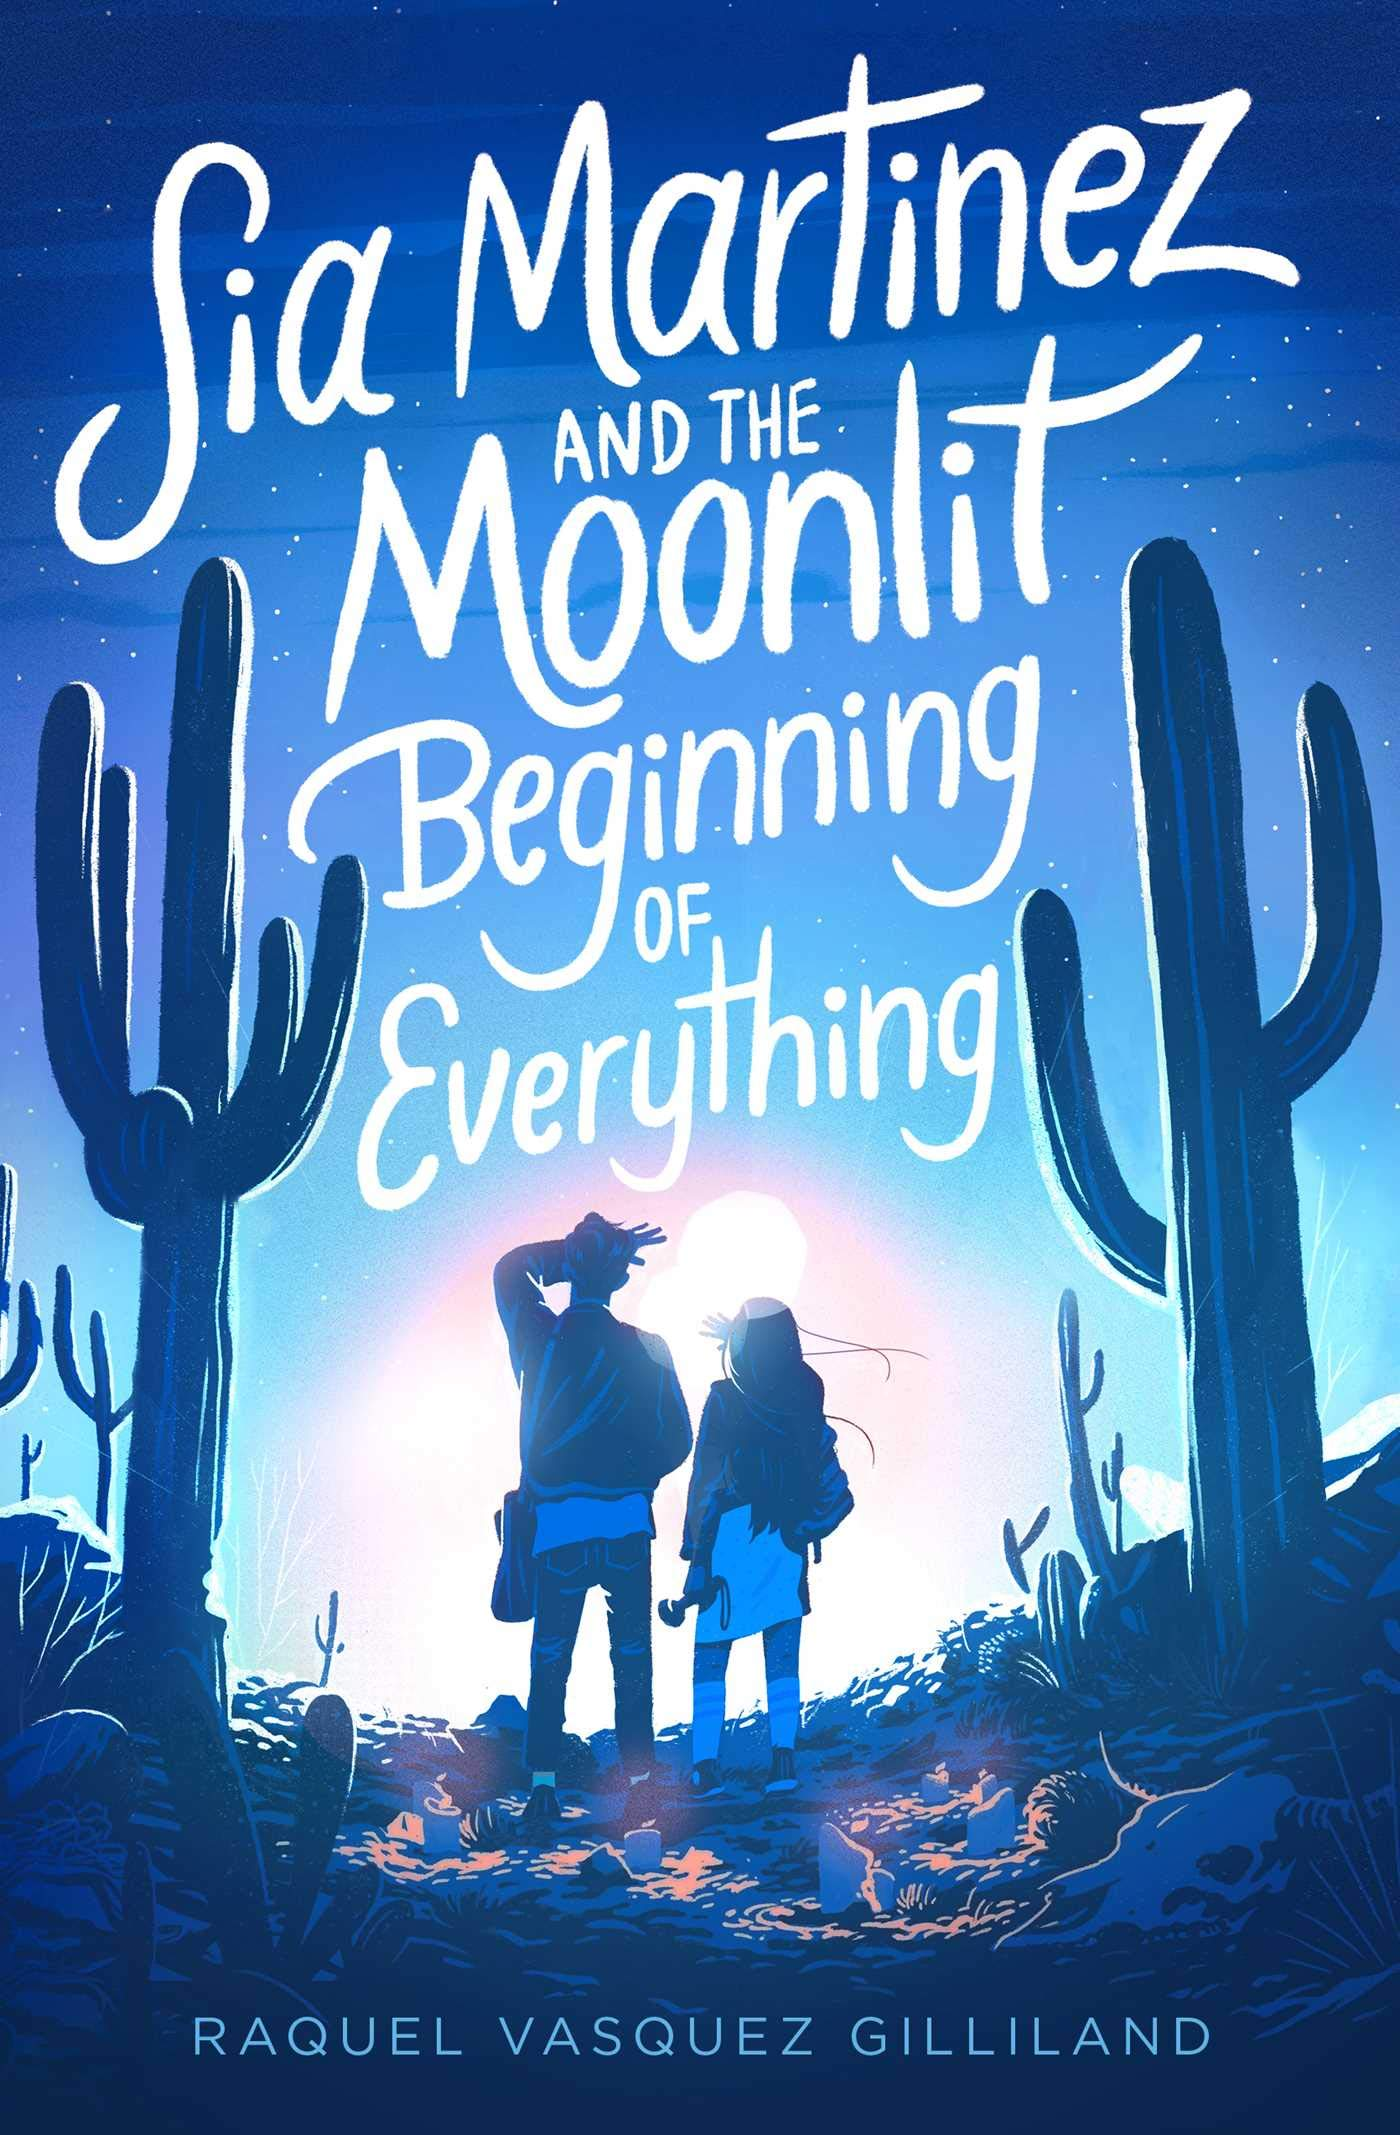 Amazon.com: Sia Martinez and the Moonlit Beginning of Everything  (9781534448636): Gilliland, Raquel Vasquez: Books